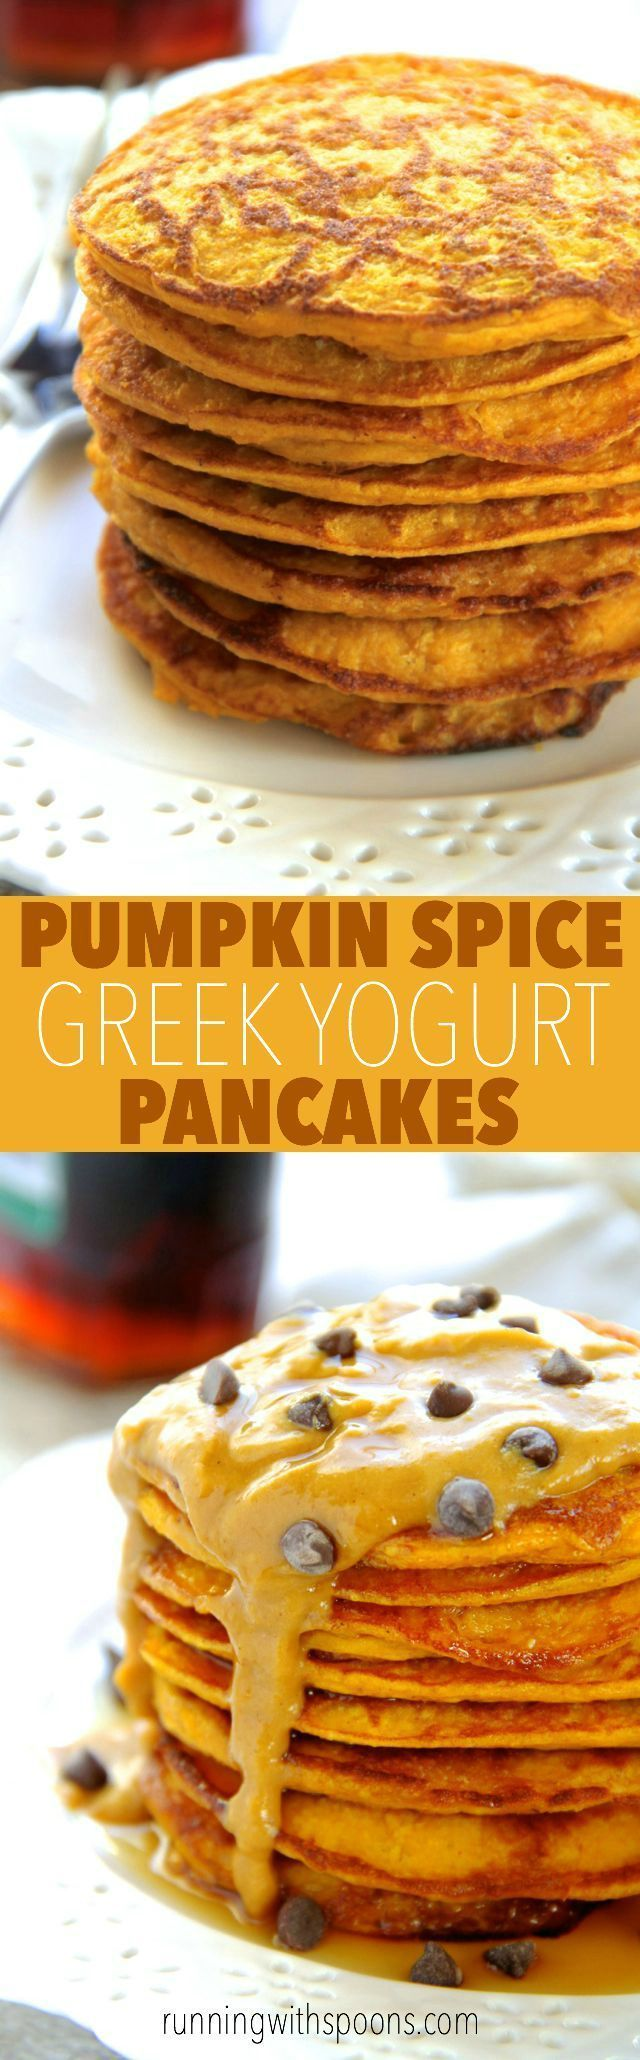 Pumpkin Spice Greek Yogurt Pancakes -- light, fluffy, and made in the blender, enjoy the ENTIRE recipe for under 300 calories with 20g of protein!    http://runningwithspoons.com #pumpkin #pancakes #breakfast